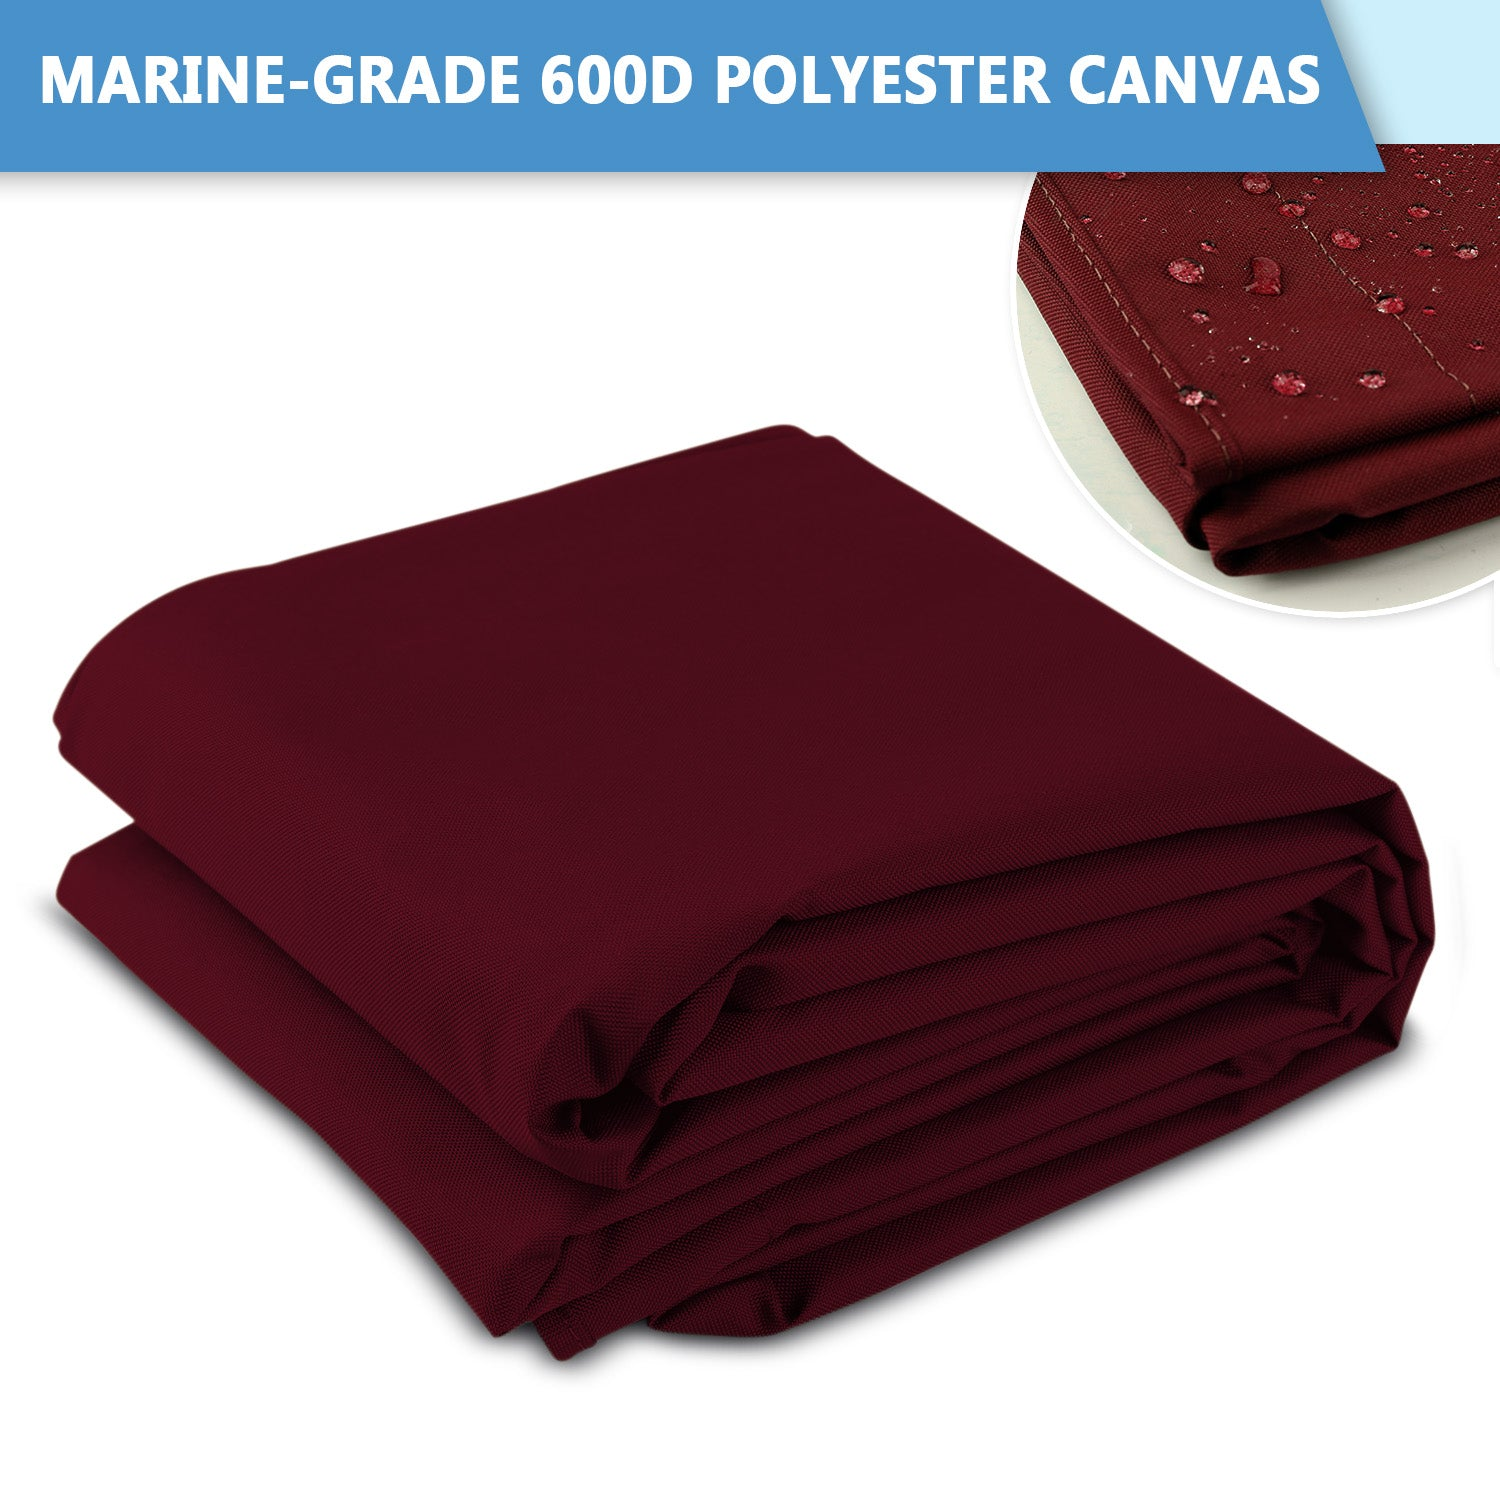 Leader Accessories Bimini Top Marine-Grade 600D Polyester Canvas